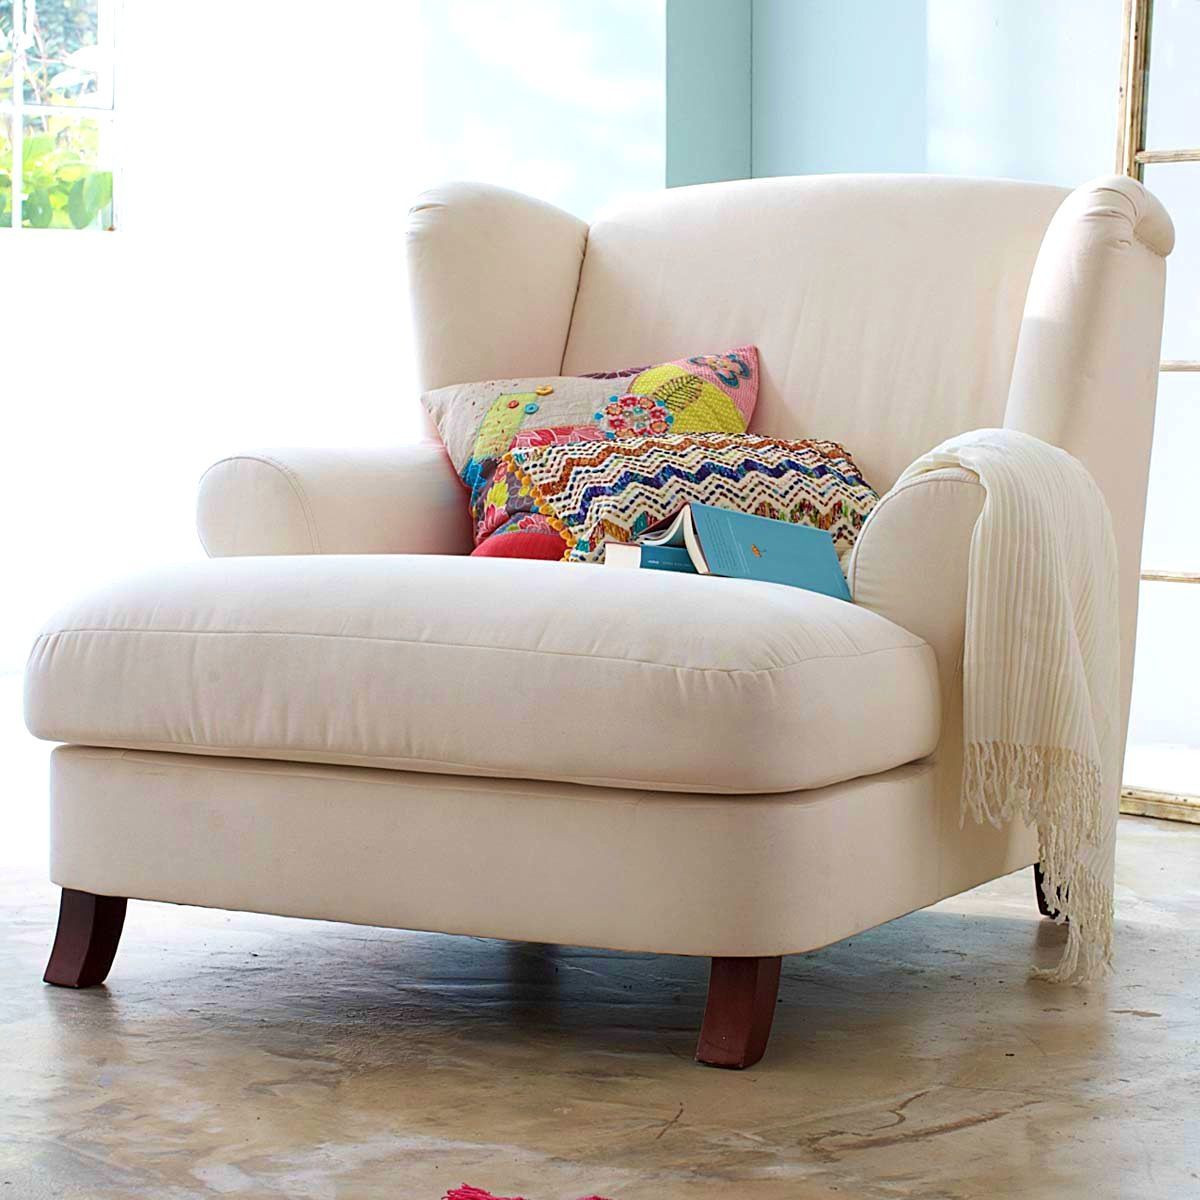 Kids Comfy Chair  Bedroom Sweet About Reading Chair Chairs fy For